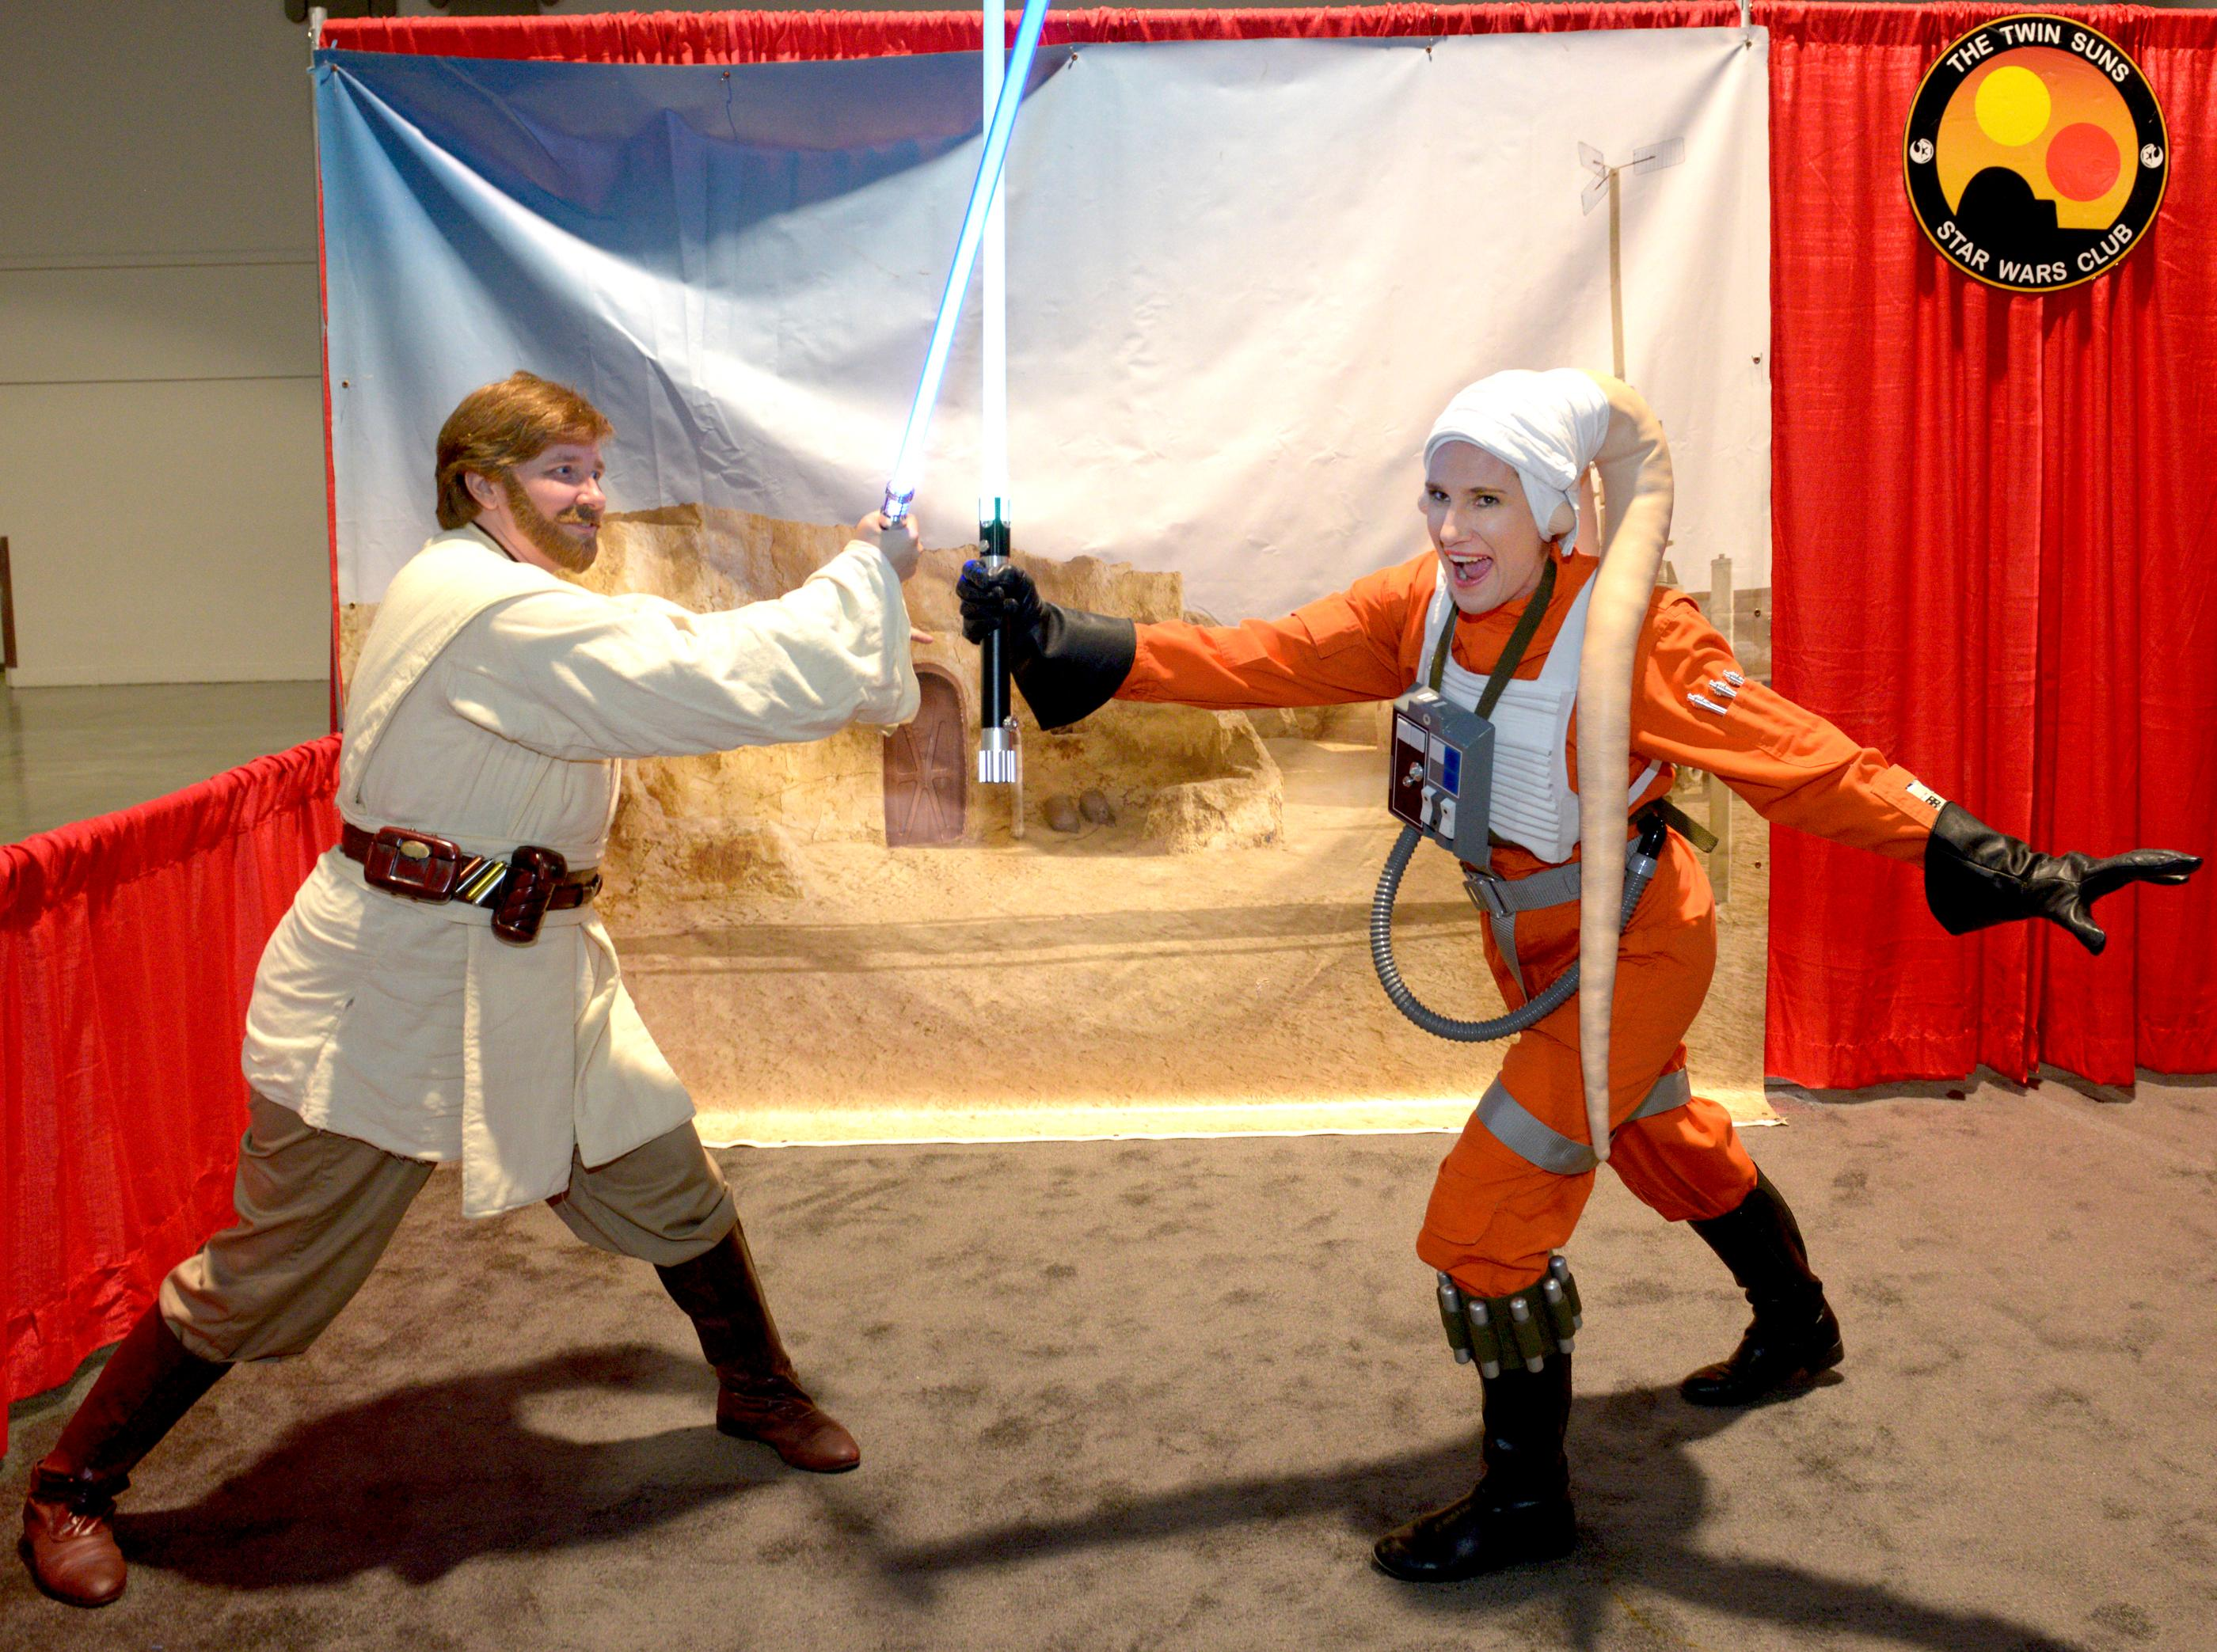 Star Wars characters pose with fans and have a lightsaber duel during the Brick Fest Live Lego Fan Experience at the Las Vegas Convention Center, September 9, 2017. [Glenn Pinkerton/Las Vegas News Bureau]